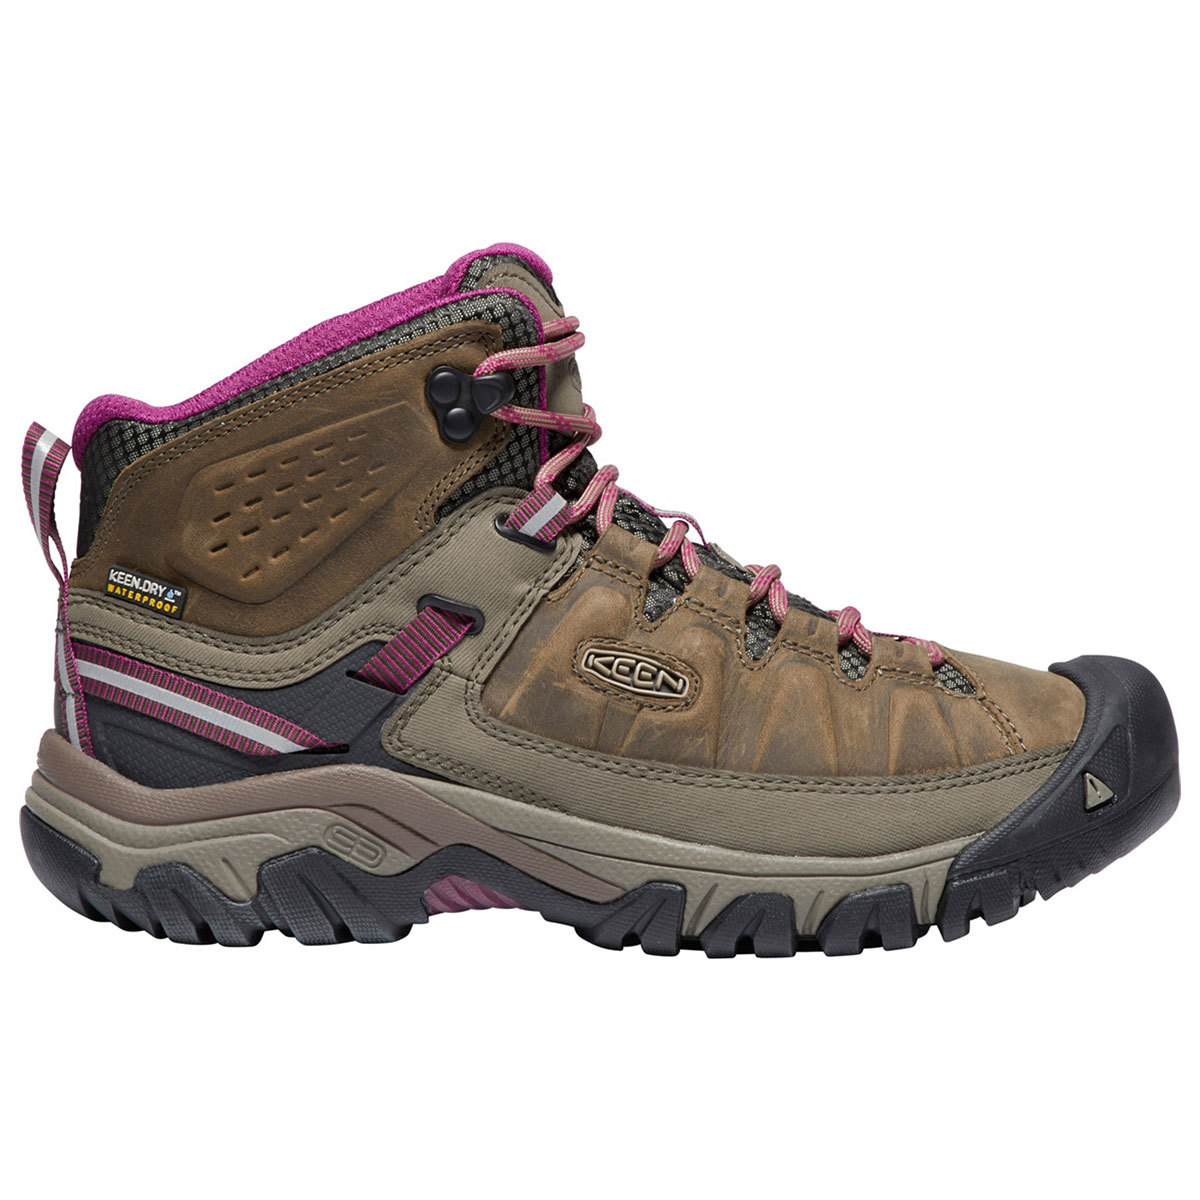 Keen Women's Targhee Iii Waterproof Mid Hiking Boots - Brown, 6.5